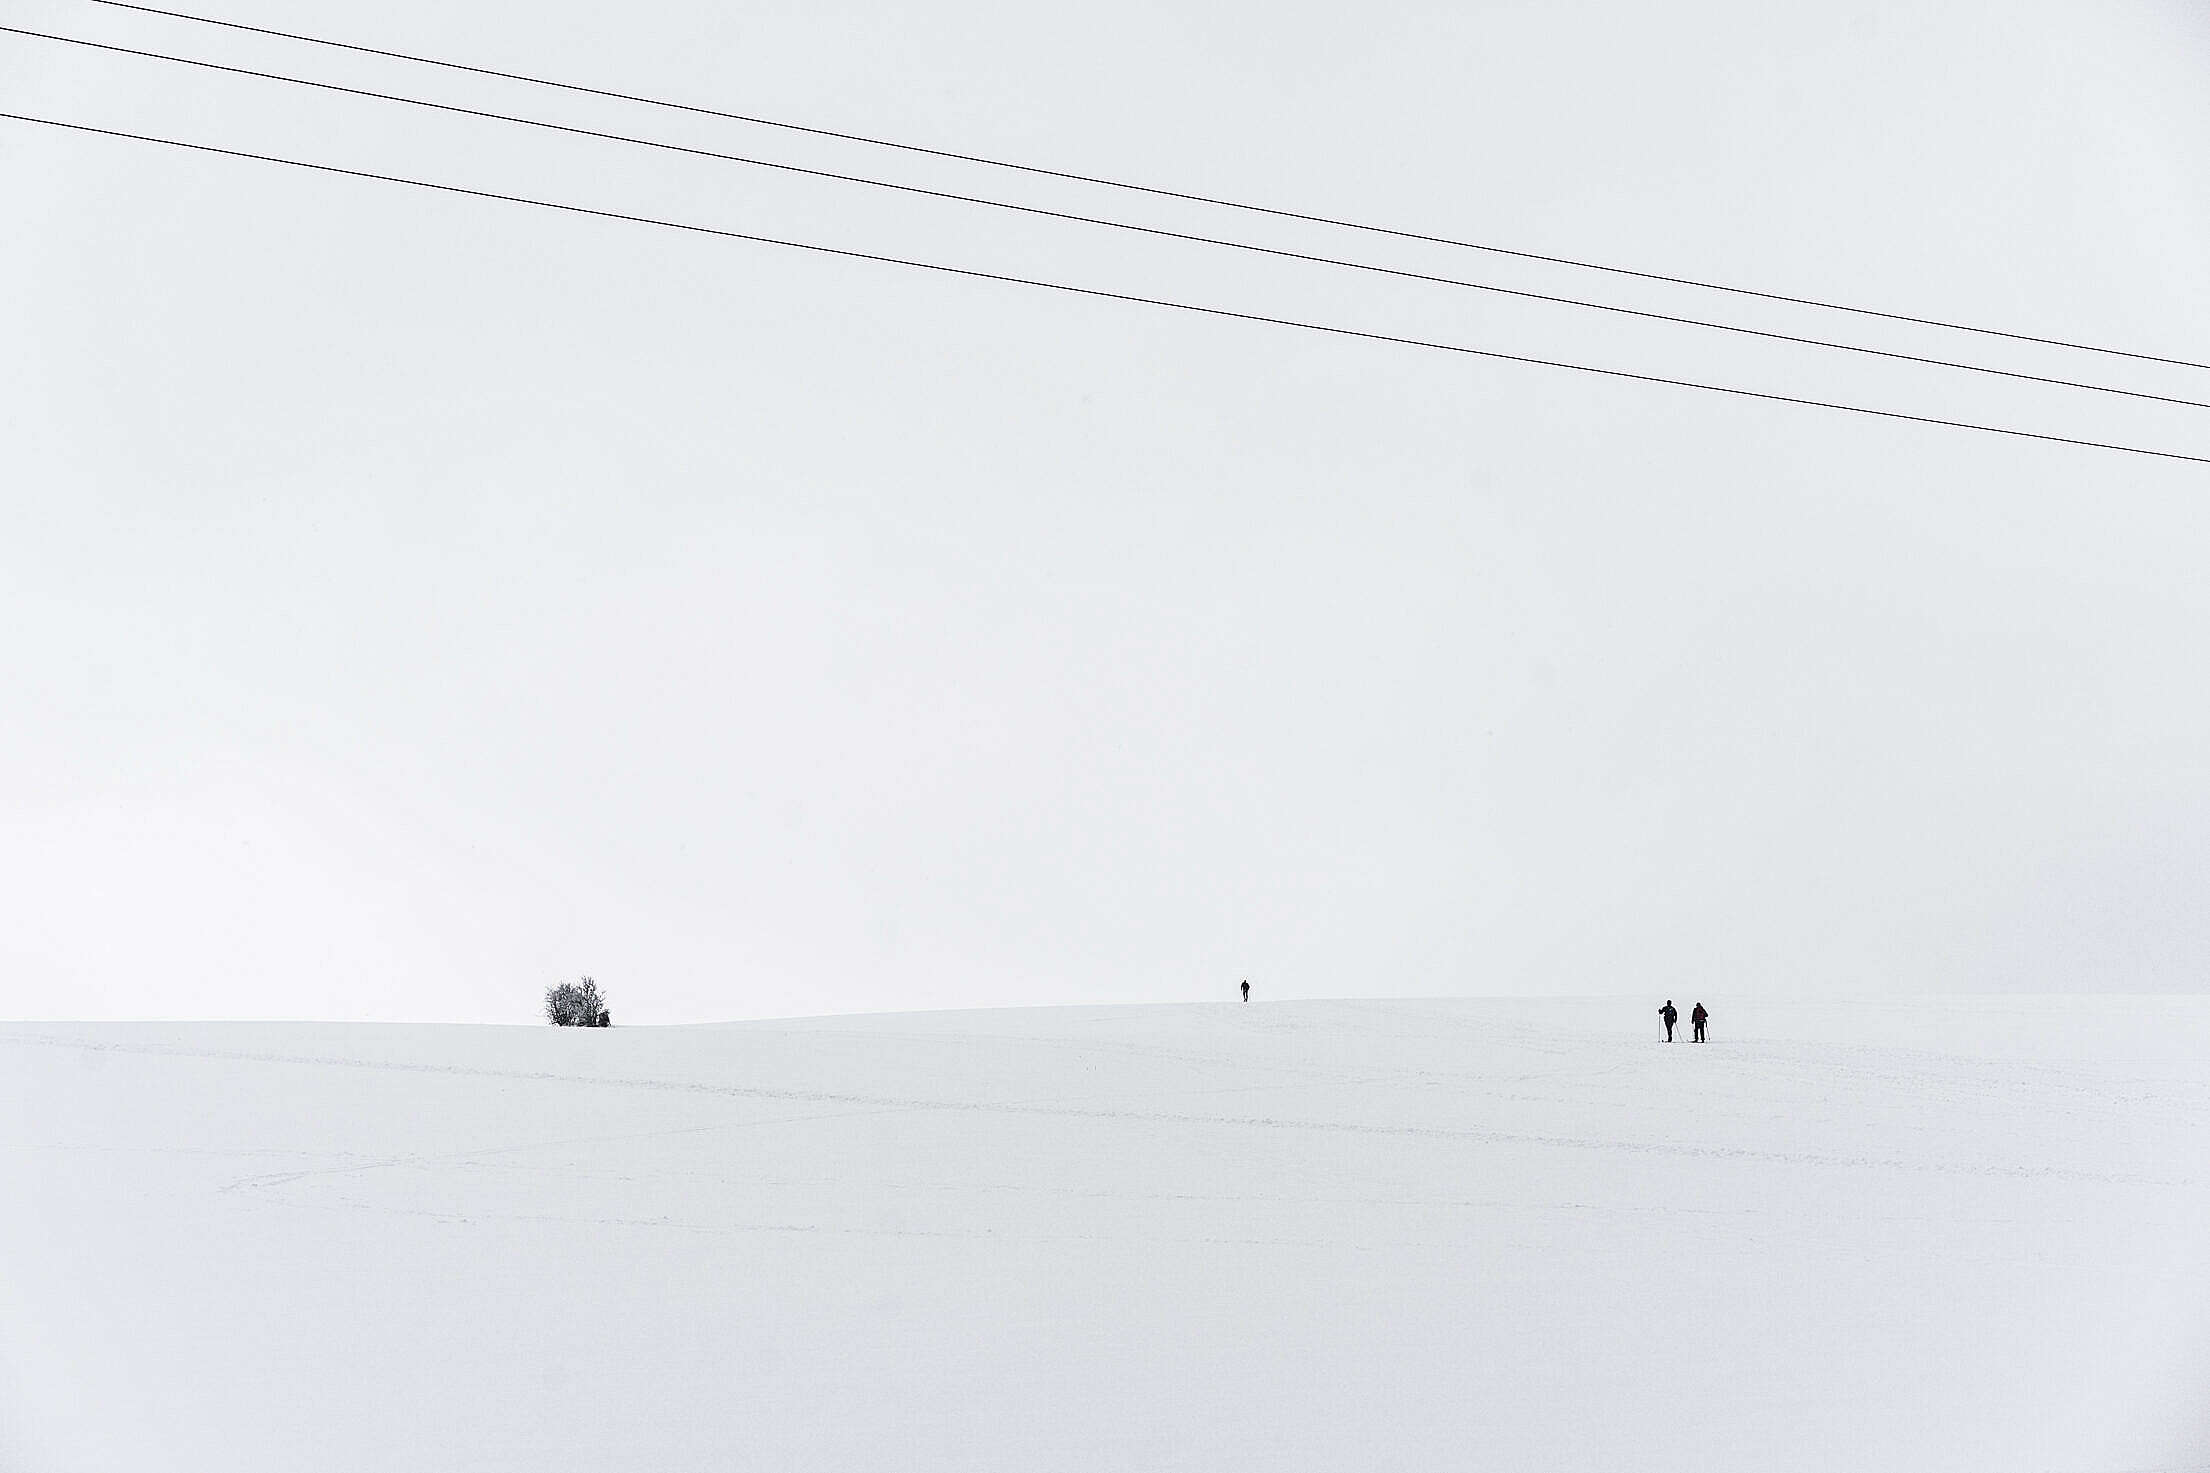 Snow Covered Hill with Tiny Cross-Country Skiers Free Stock Photo